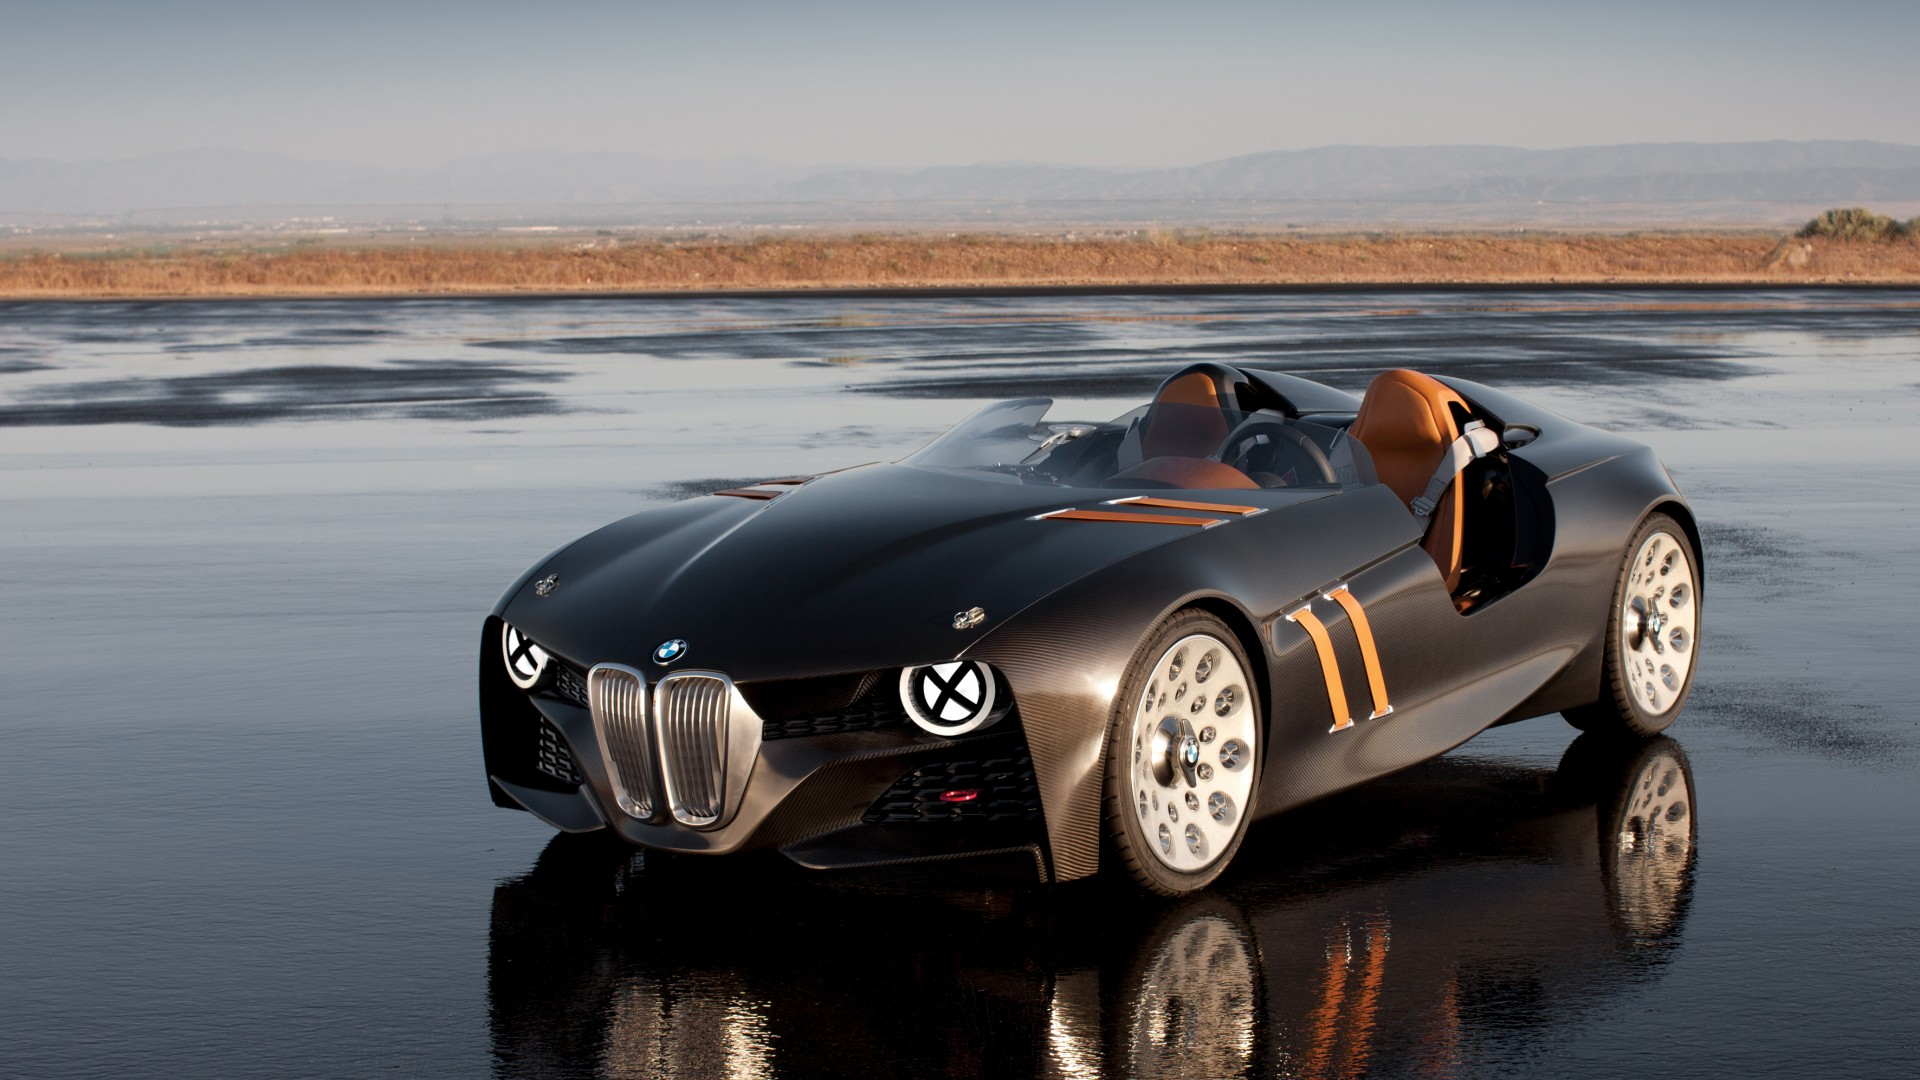 BMW 328, HD, 4k wallpaper, Hommage, concept, supercar, luxury cars, sports car, review, test drive, speed, cabriolet, front (horizontal)